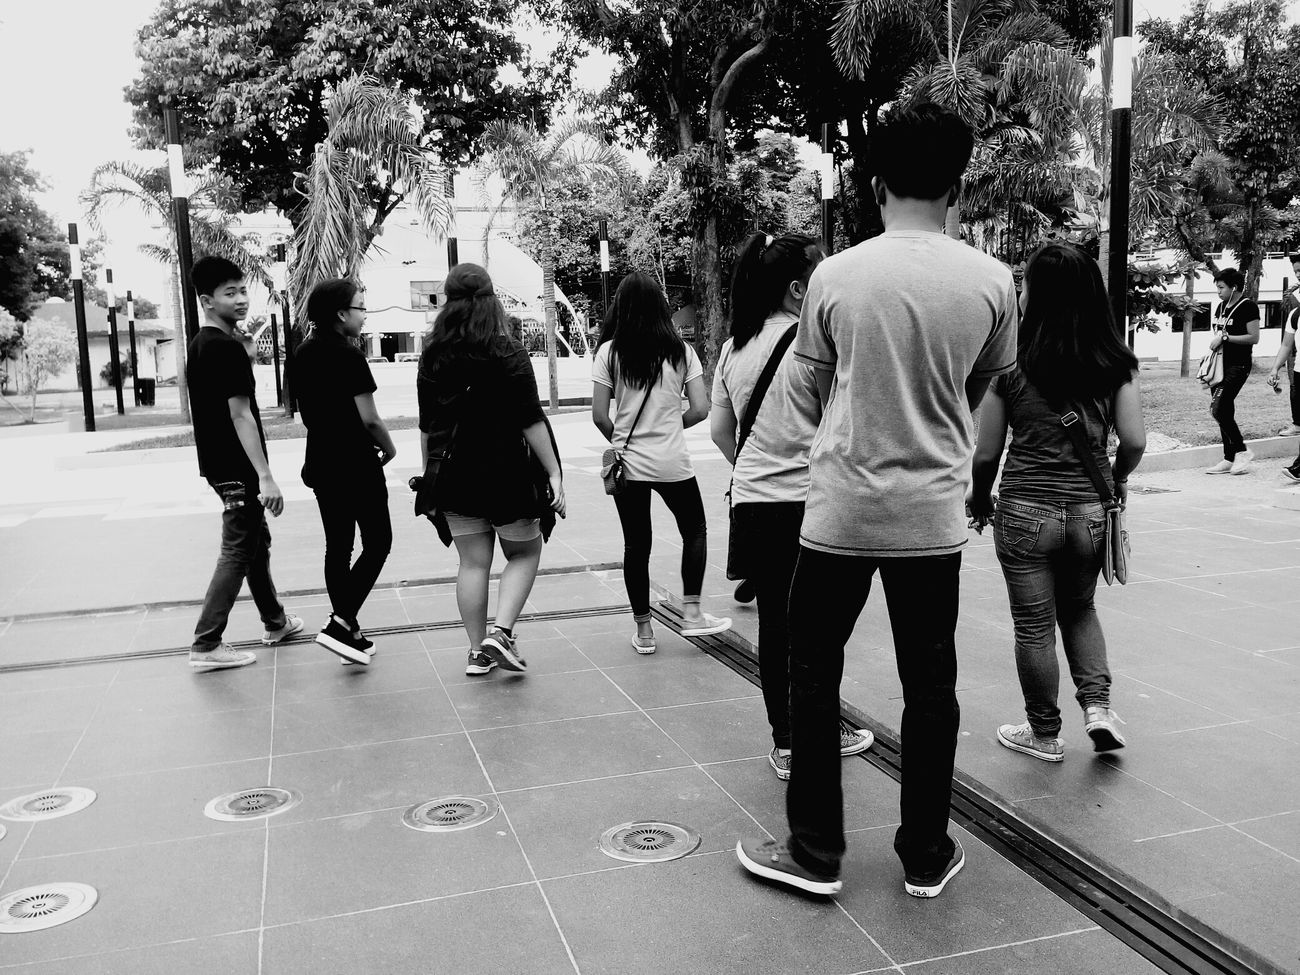 Gather once in a while with your friends..Walking Around The City  Friends Reconnecting  Plaza Squad VacayMode TeamAugust Ailapost AVPhotography